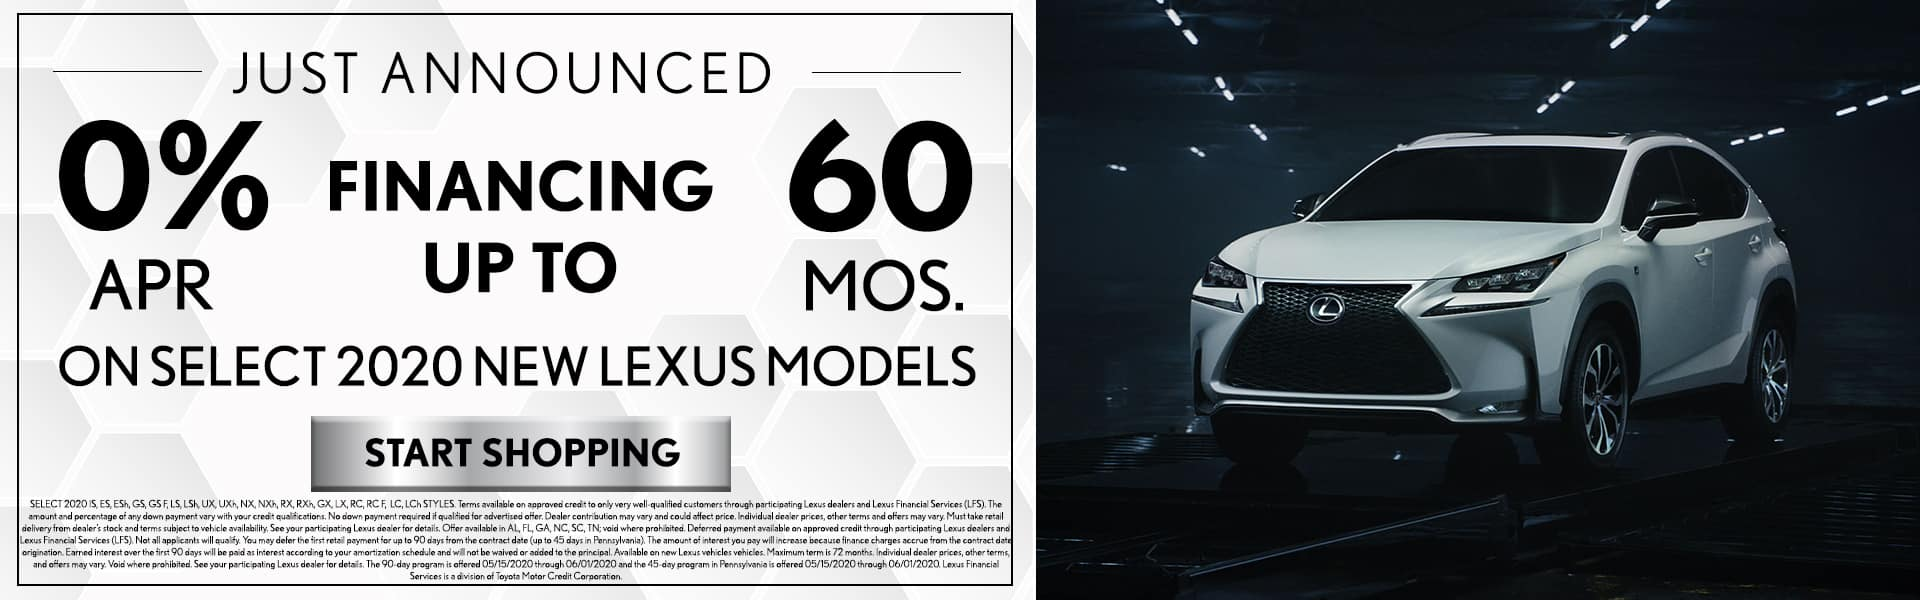 0% Financing for Lexus 2020 Models - May 2020 Finance Offers